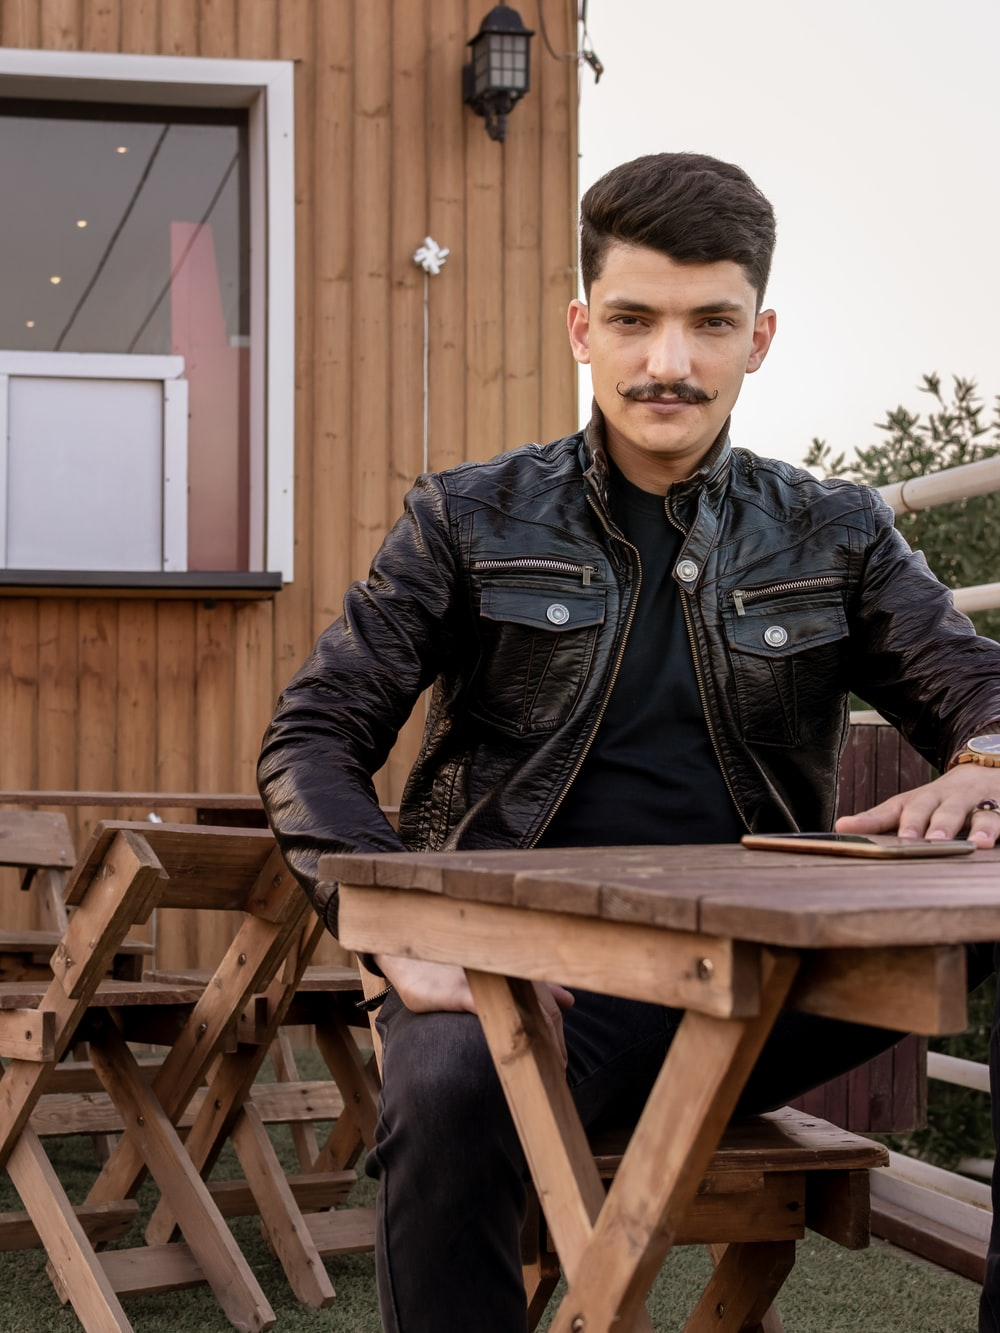 man sitting at table outdoor during day